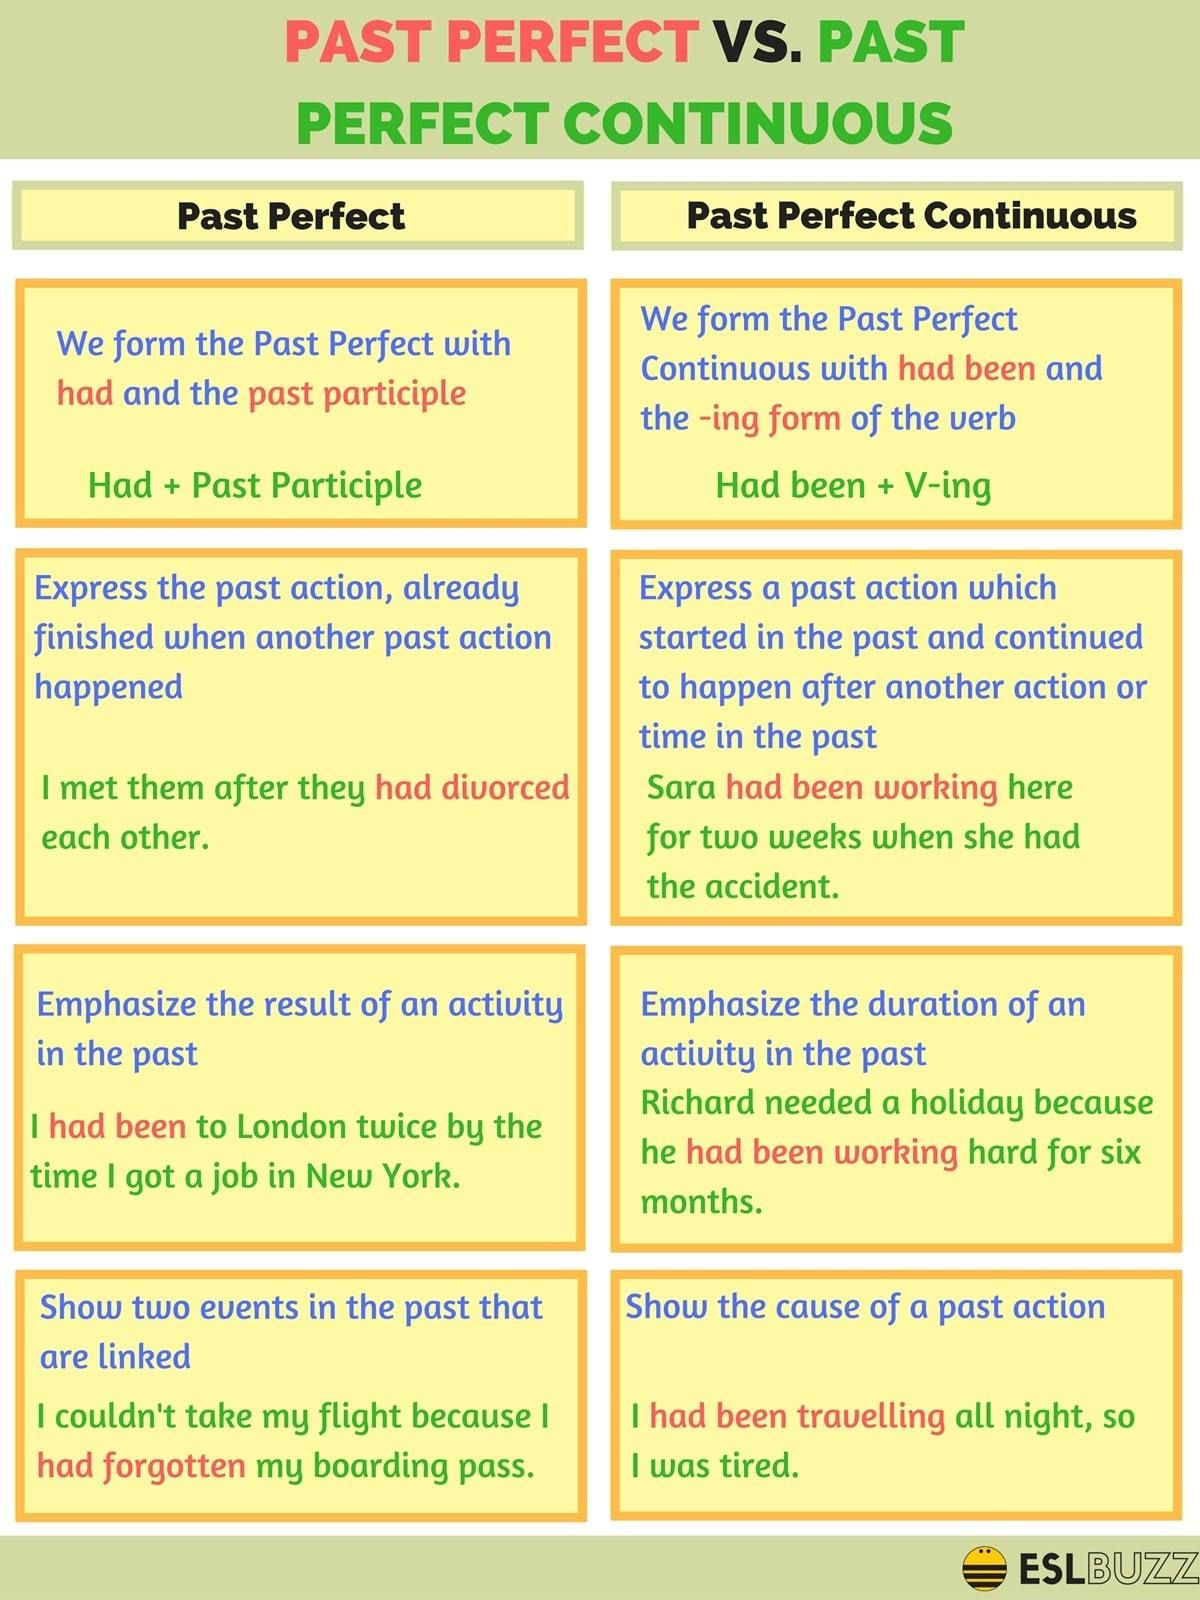 Past Perfect Vs Past Perfect Continuous Eng English English